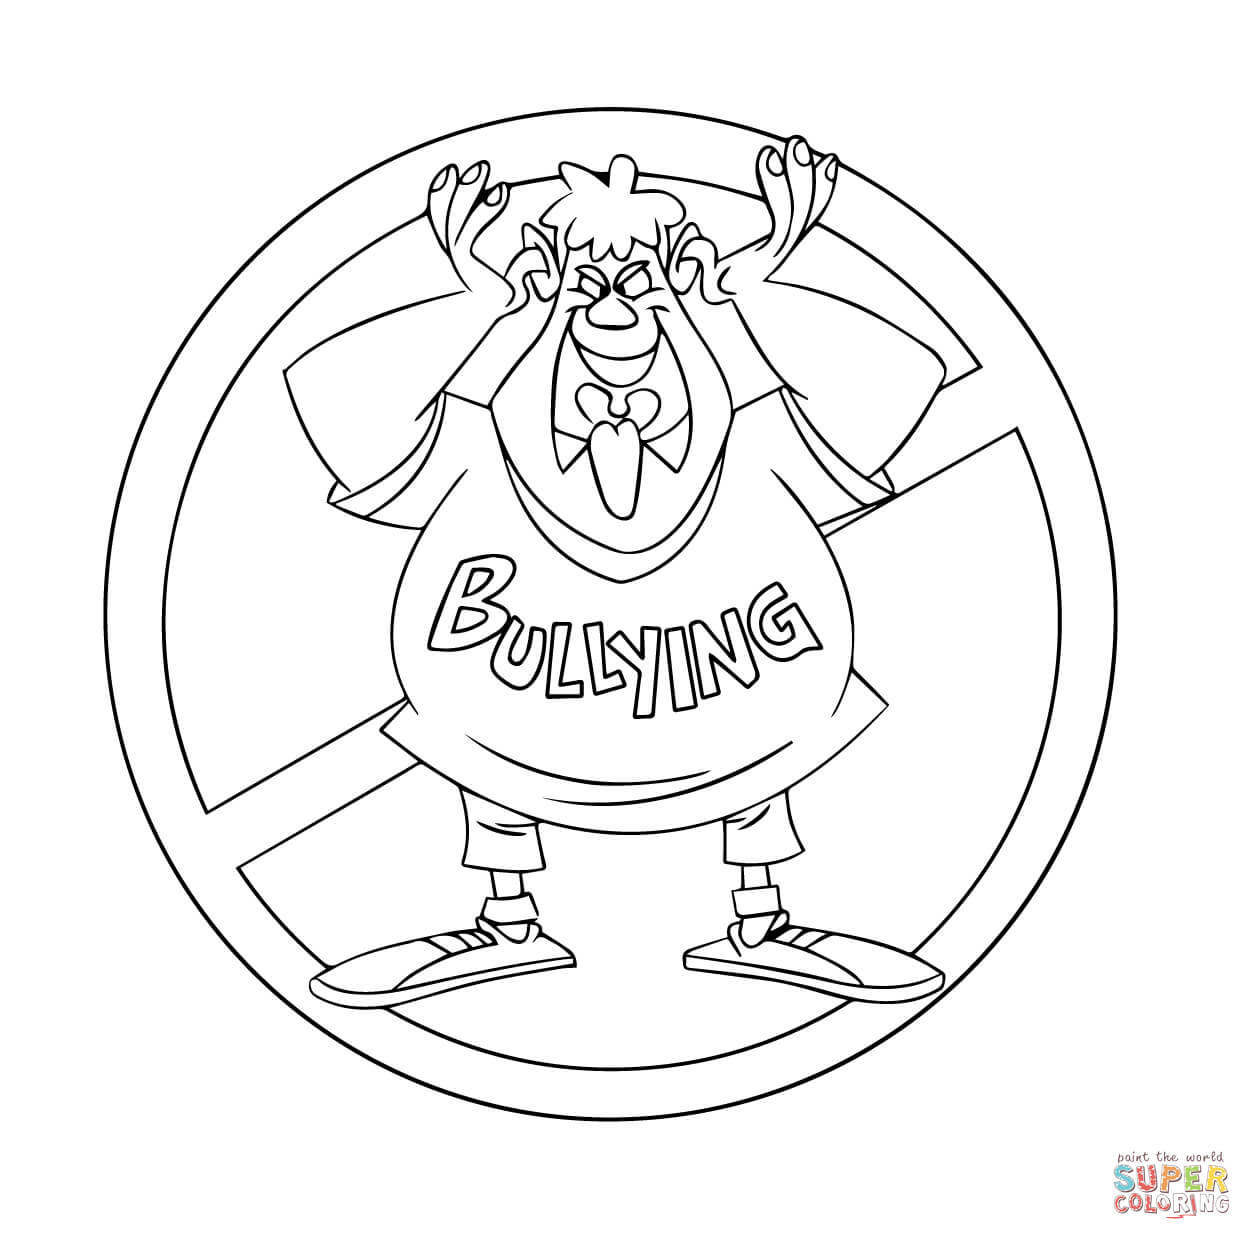 Bullying Coloring Pages Printable